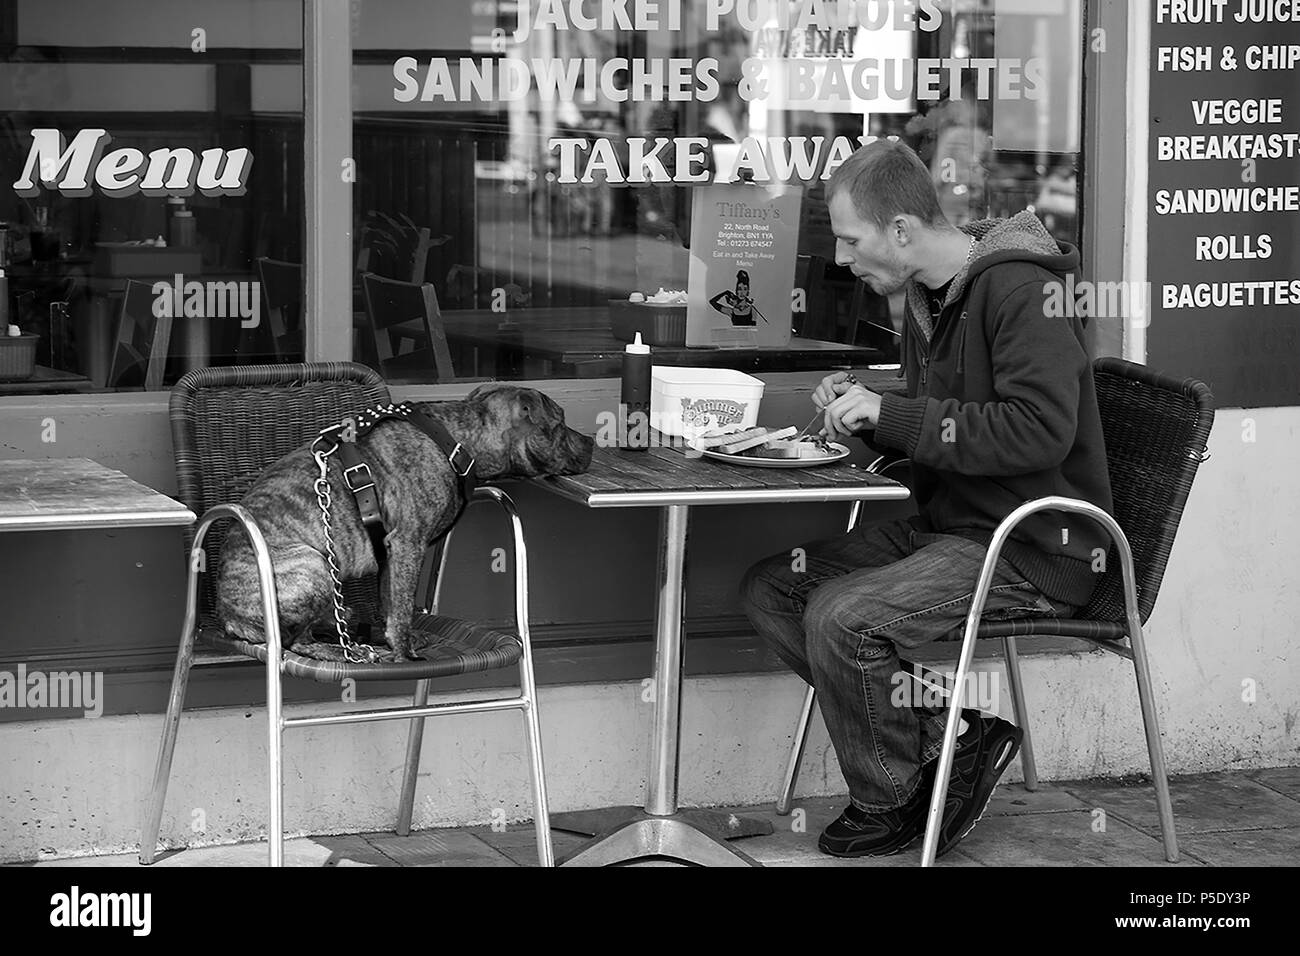 One man and his dog: Breakfast at Tiffany's, Regent Street, Brighton, East Sussex, England, UK.  Black and white version. - Stock Image